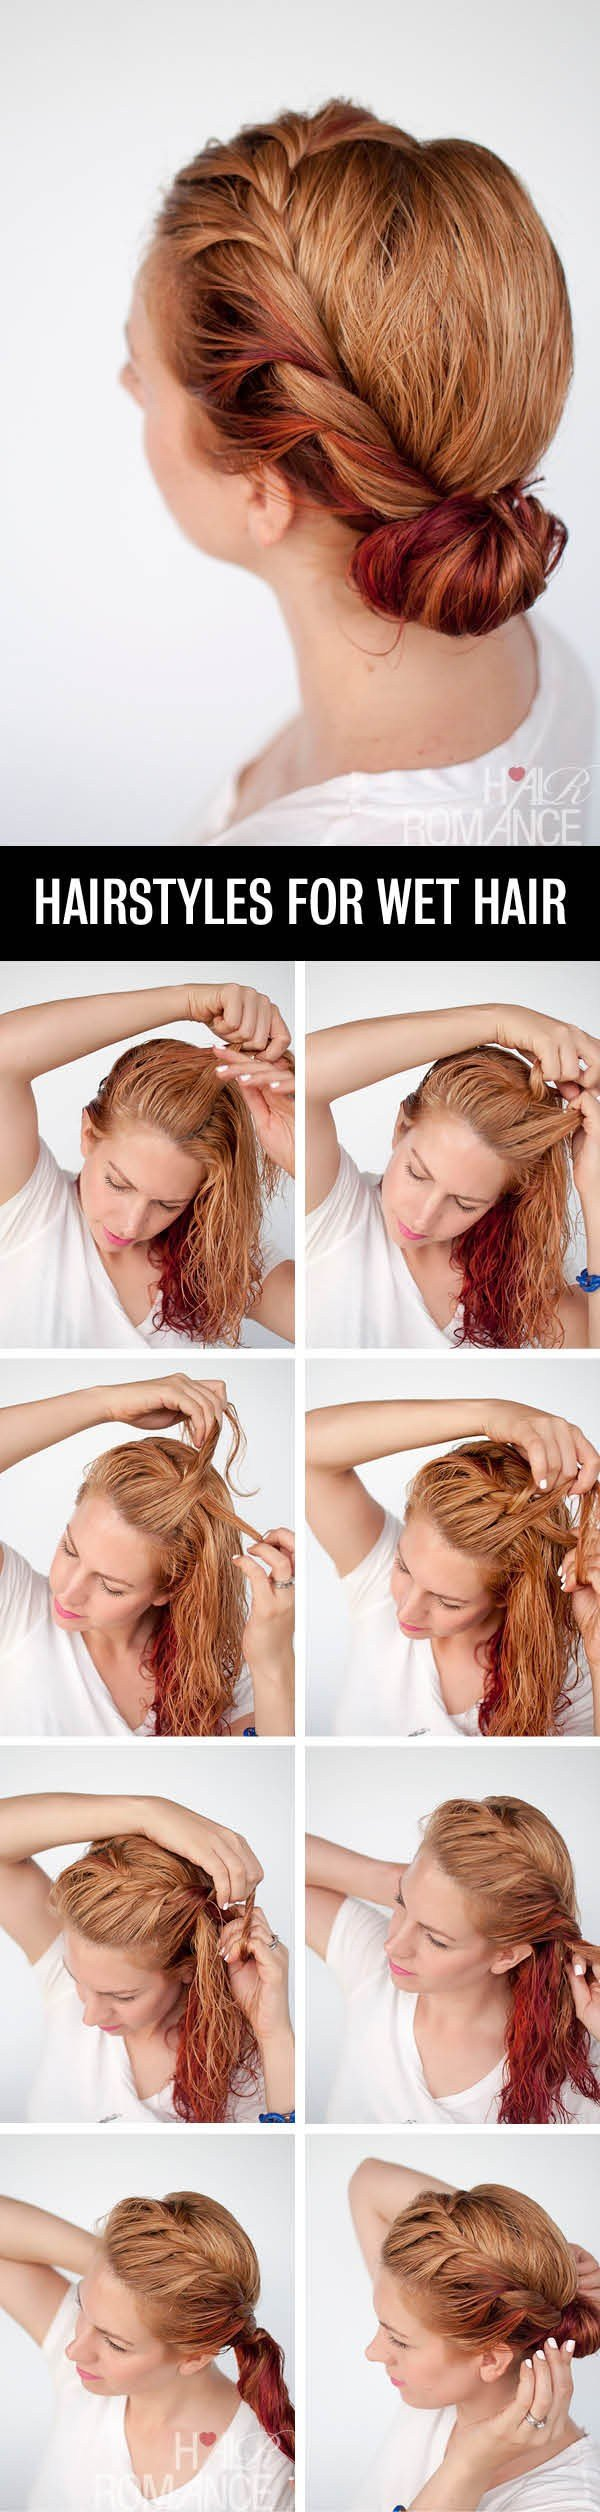 The Best Get Ready Fast With 7 Easy Hairstyle Tutorials For Wet Hair Hair Romance Pictures